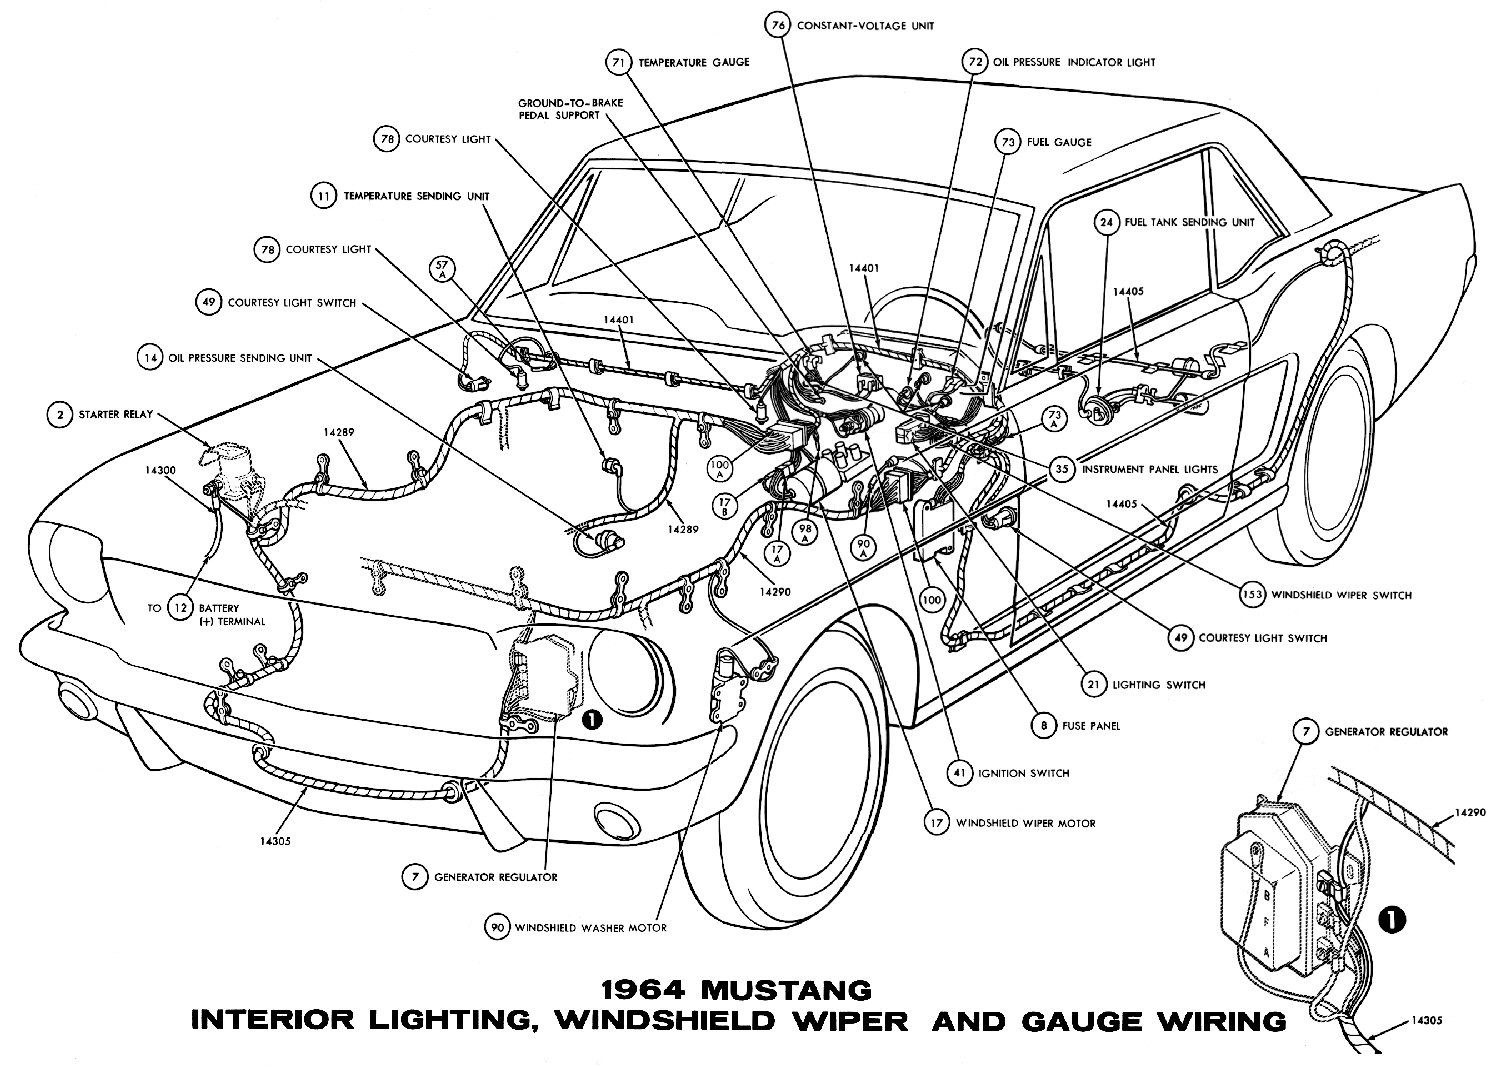 Auto parts drawing at getdrawings free for personal use auto rh getdrawings